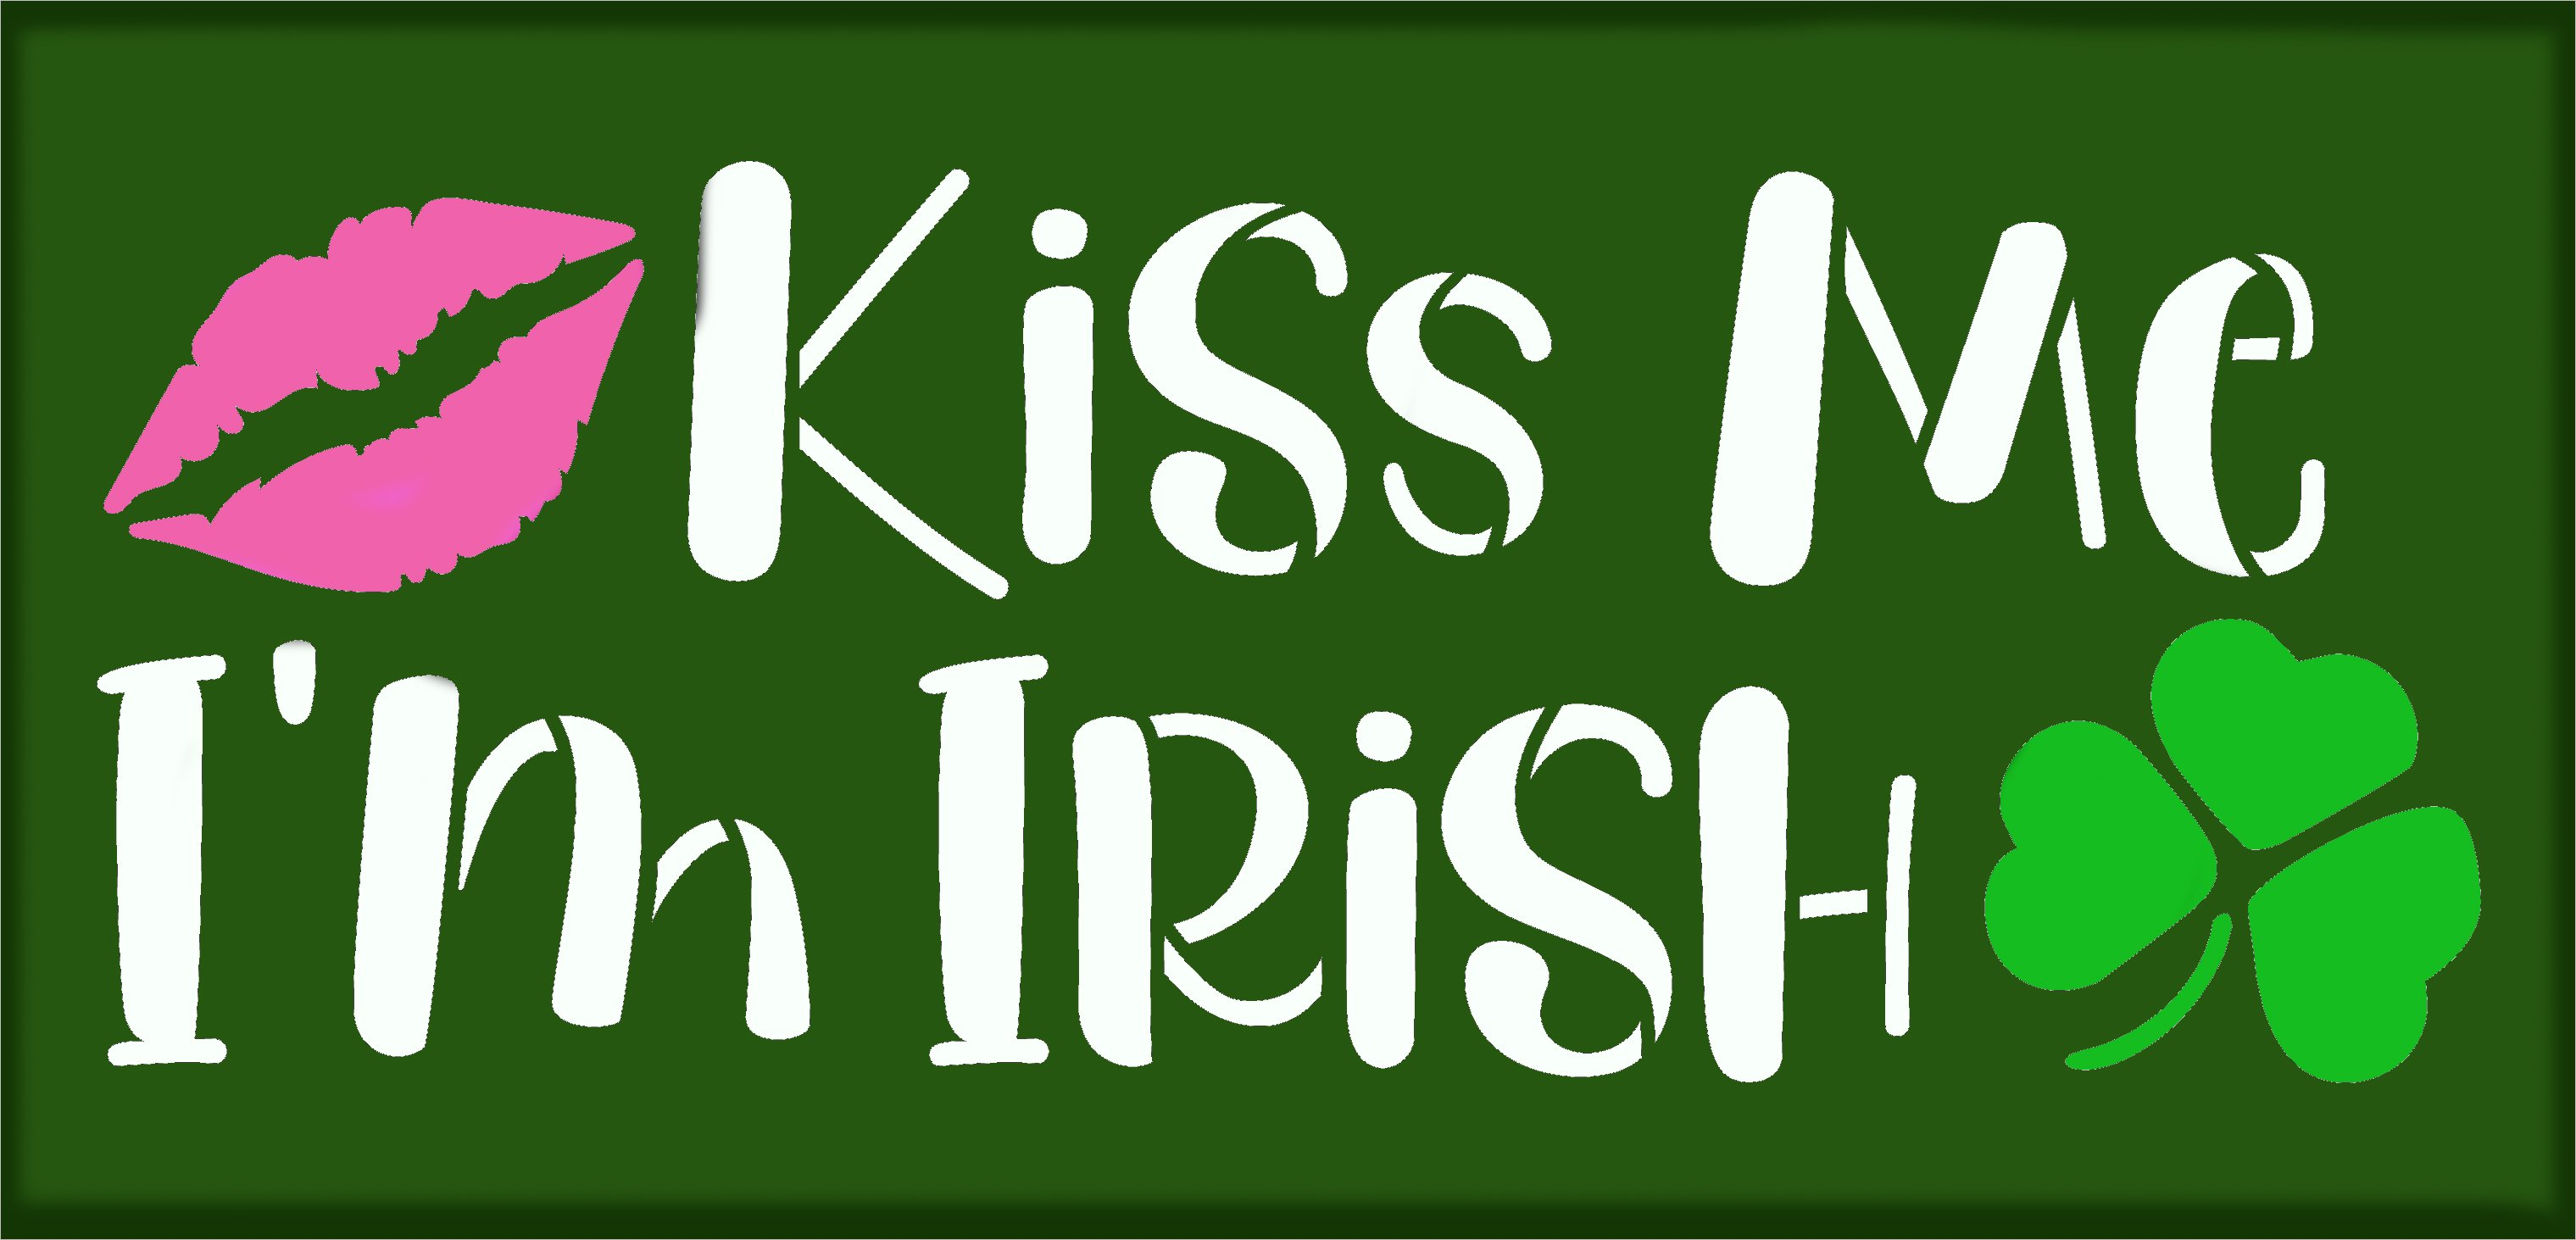 Kiss Me I'm Irish Stencil with Lips & Shamrock by StudioR12   DIY St. Patrick's Day Home Decor   Paint Wood Signs   Select Size